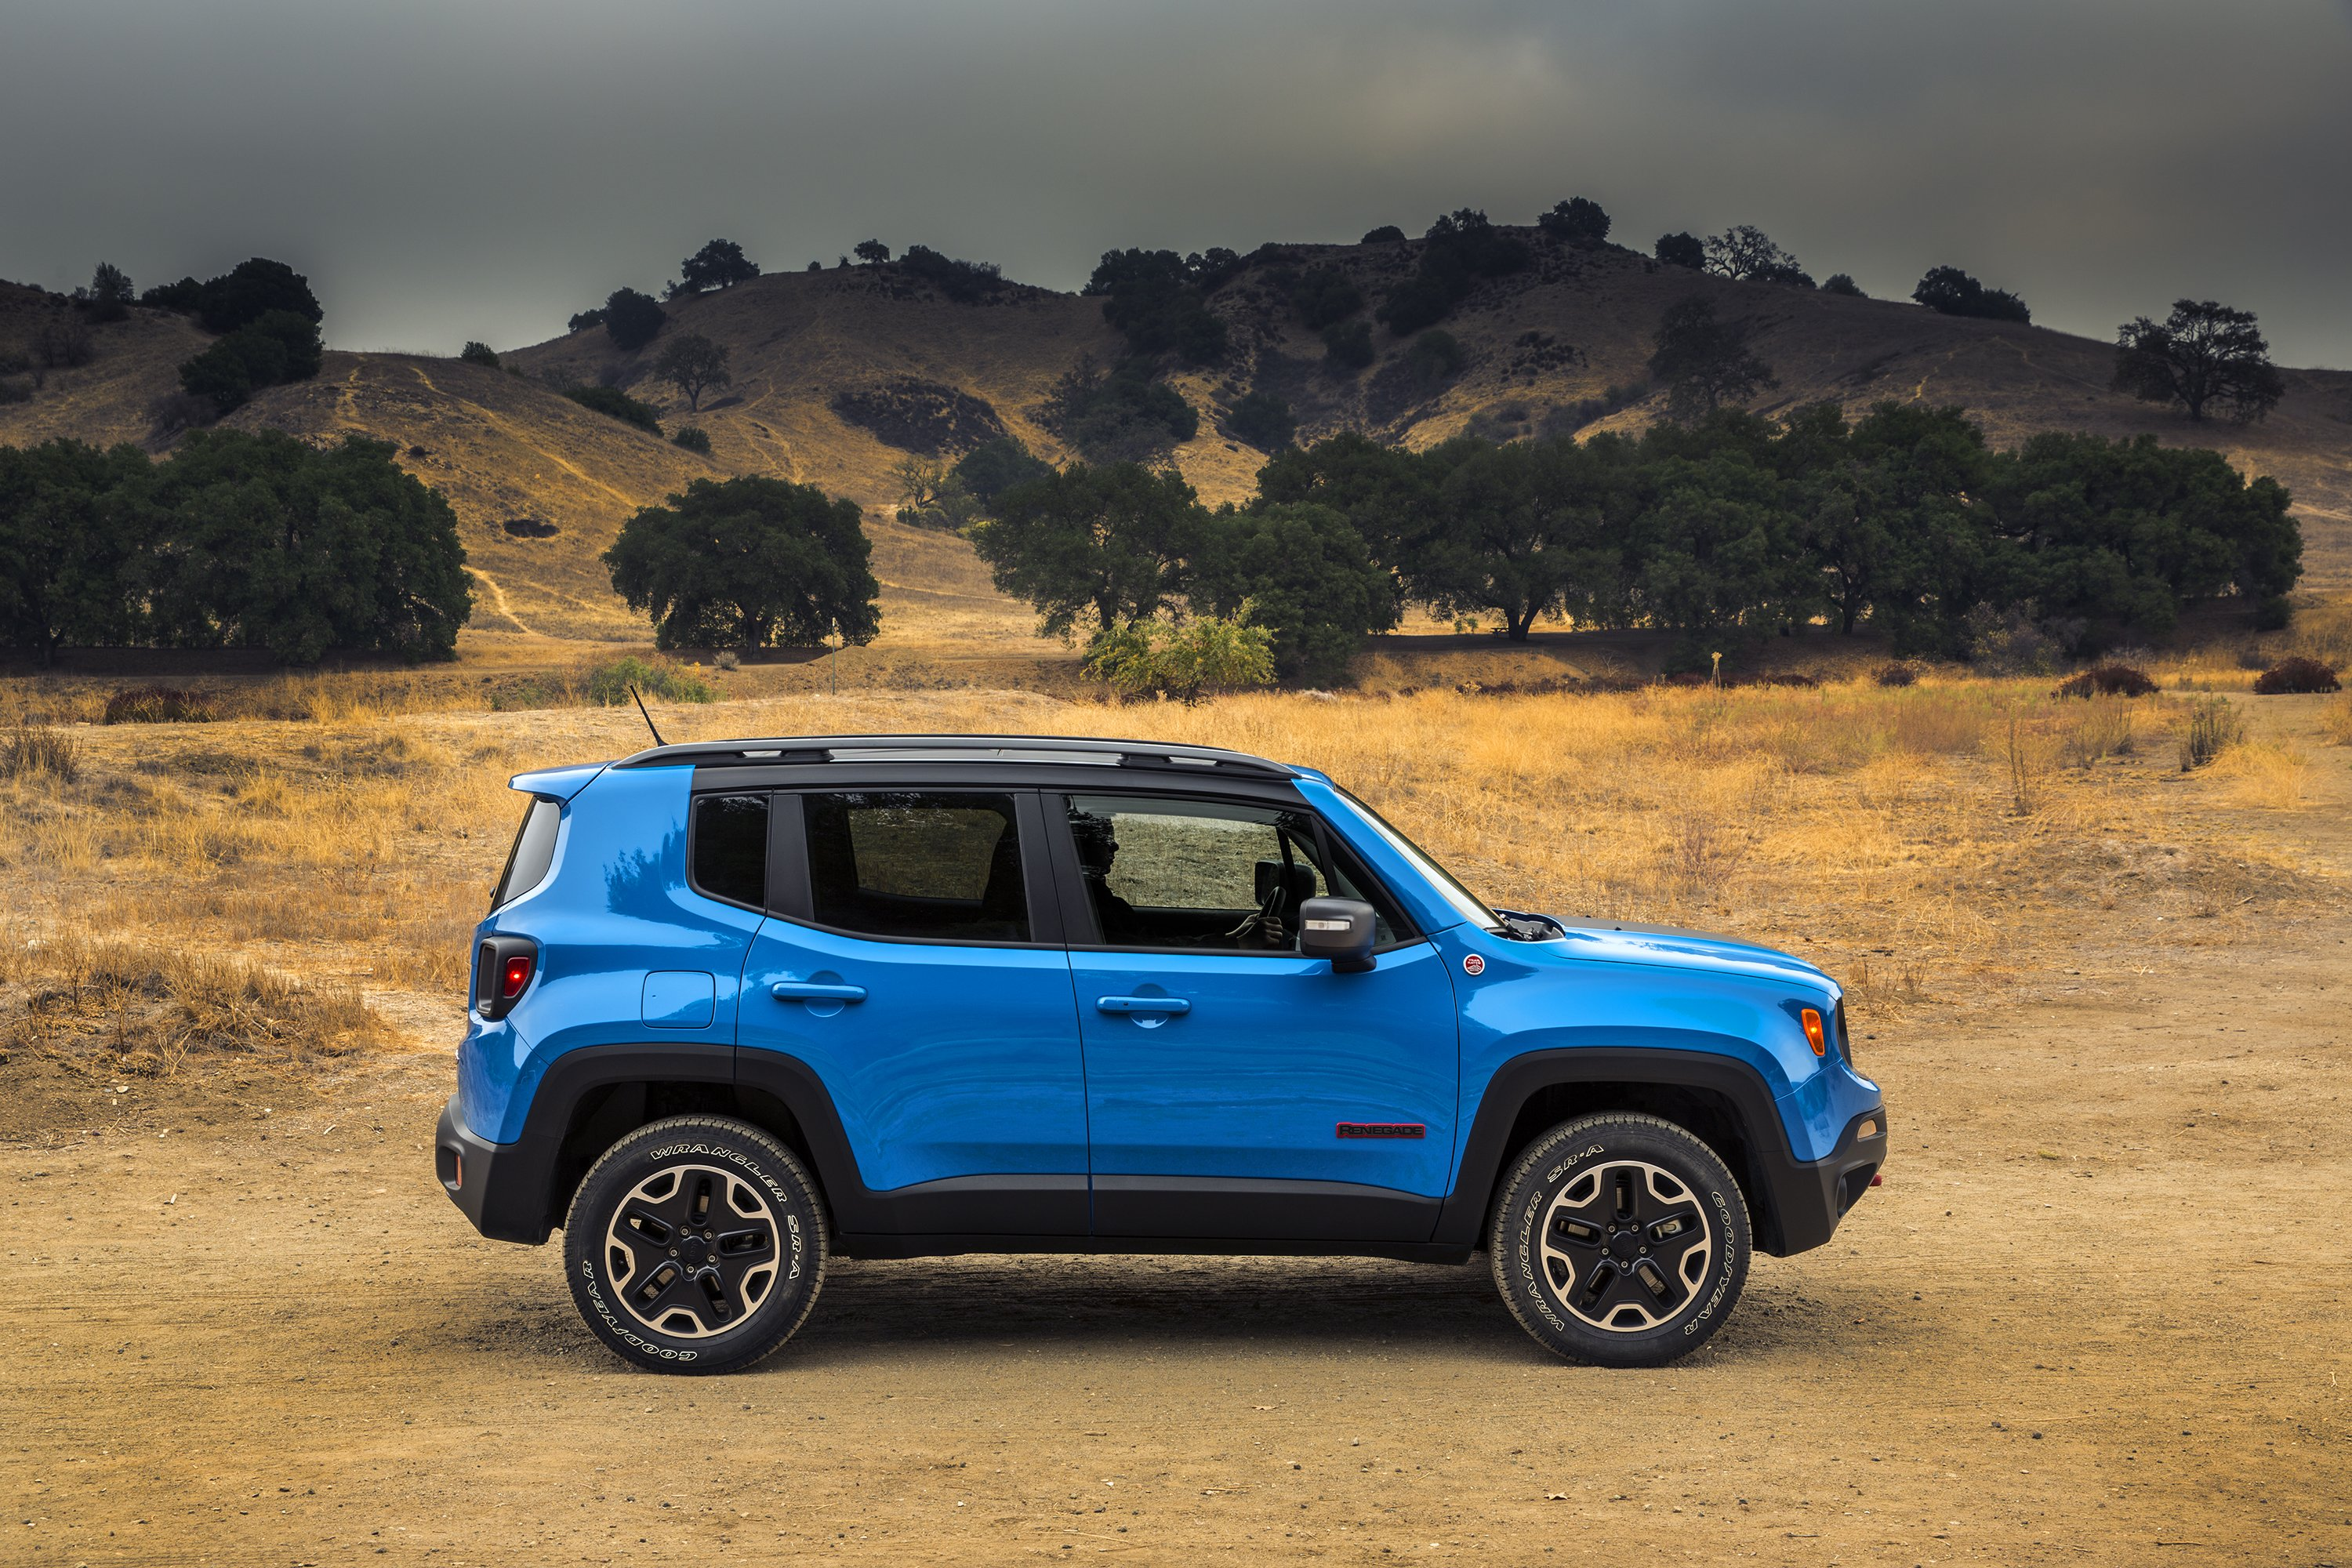 2015 jeep renegade trailhawk suv 4x4 wallpaper 3000x2000 618826 wallpaperup. Black Bedroom Furniture Sets. Home Design Ideas